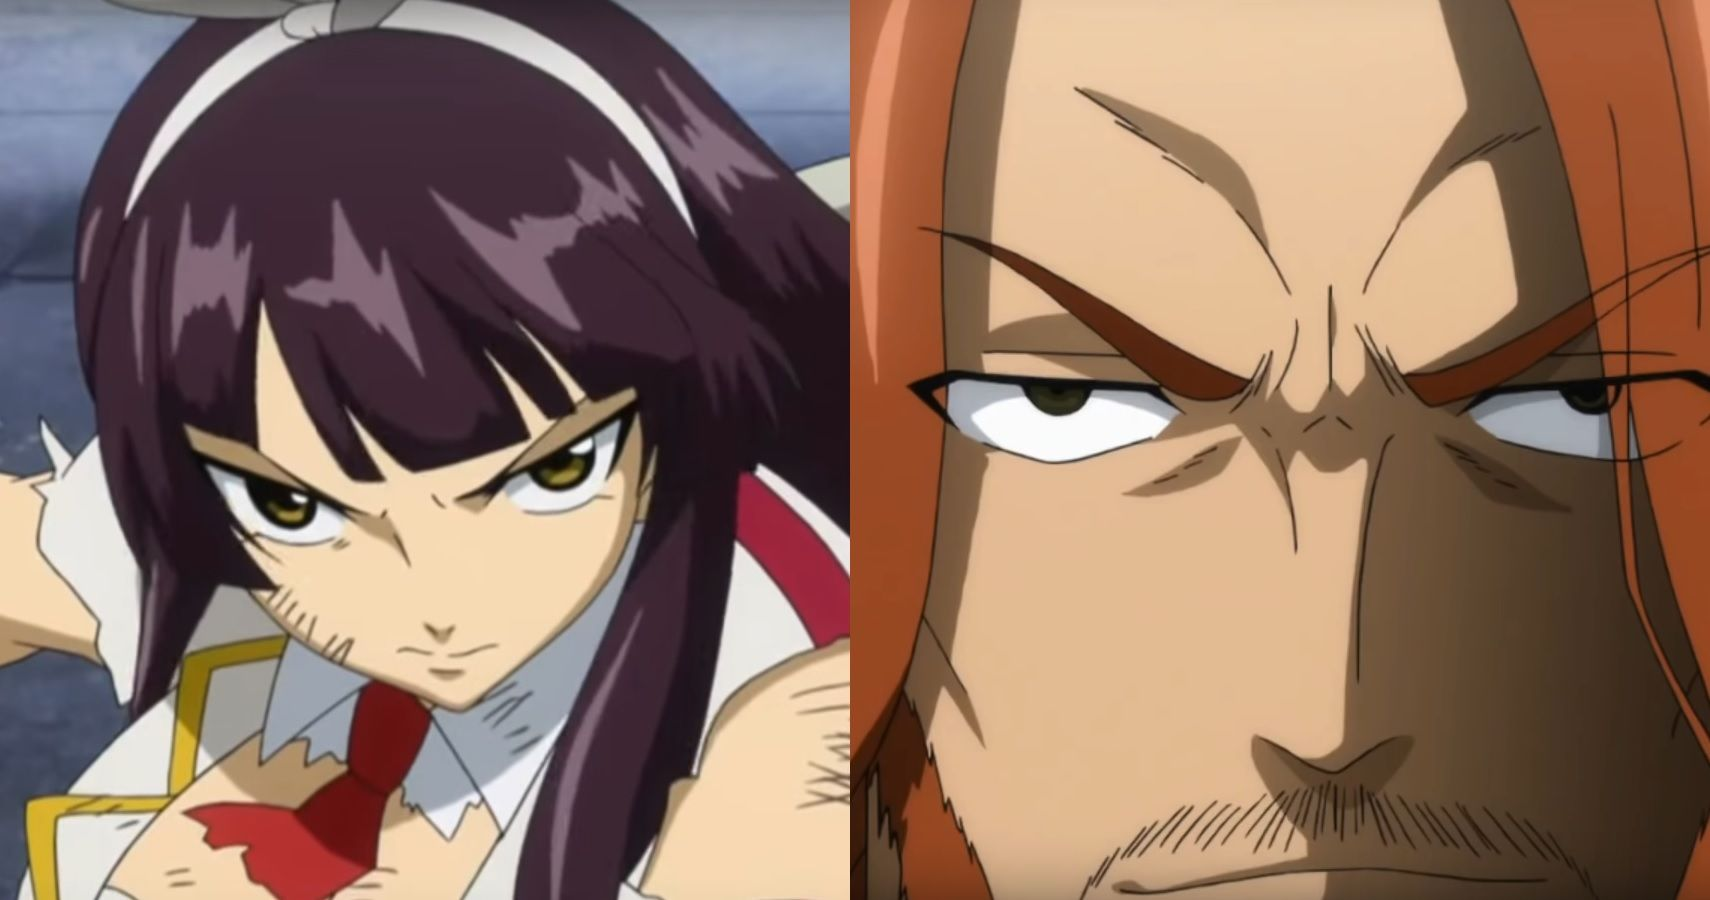 Fairy Tail 10 Characters Who Are Definitely Stronger Than Gajeel Mirajane strauss, а лайн арт это как? fairy tail 10 characters who are